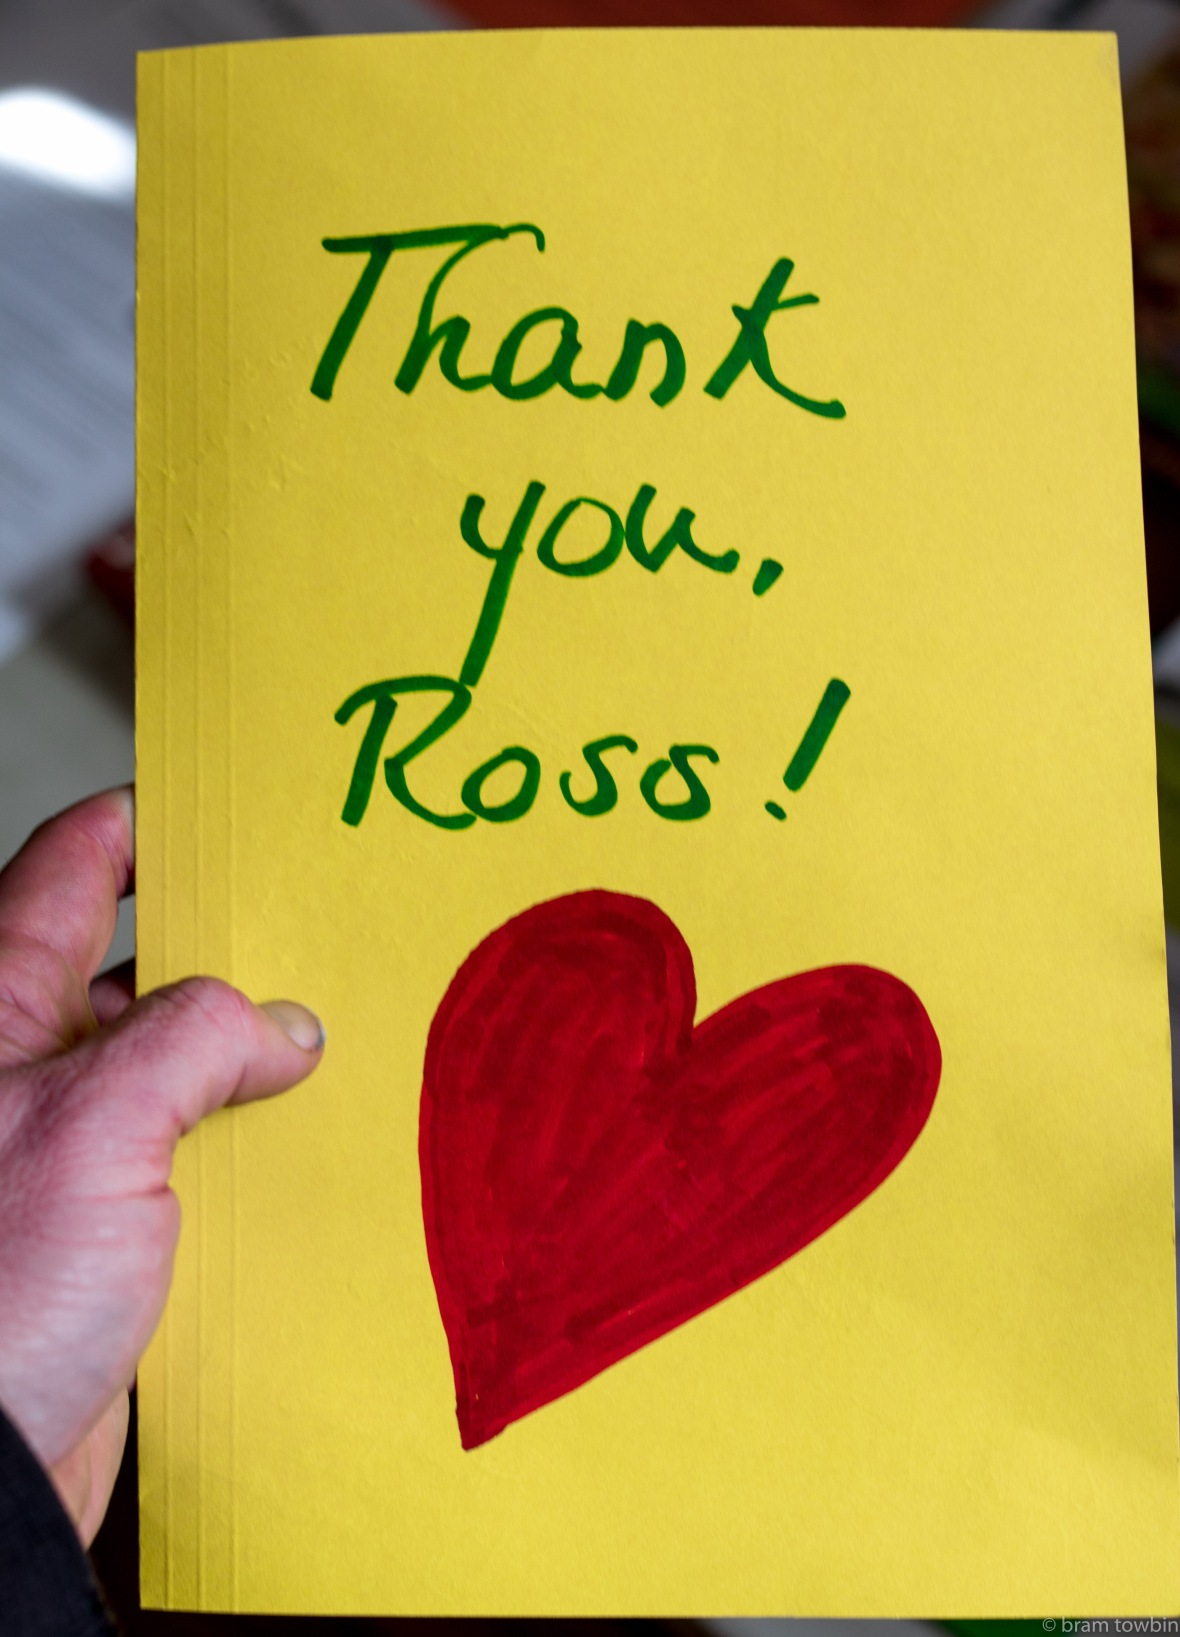 thank you ross